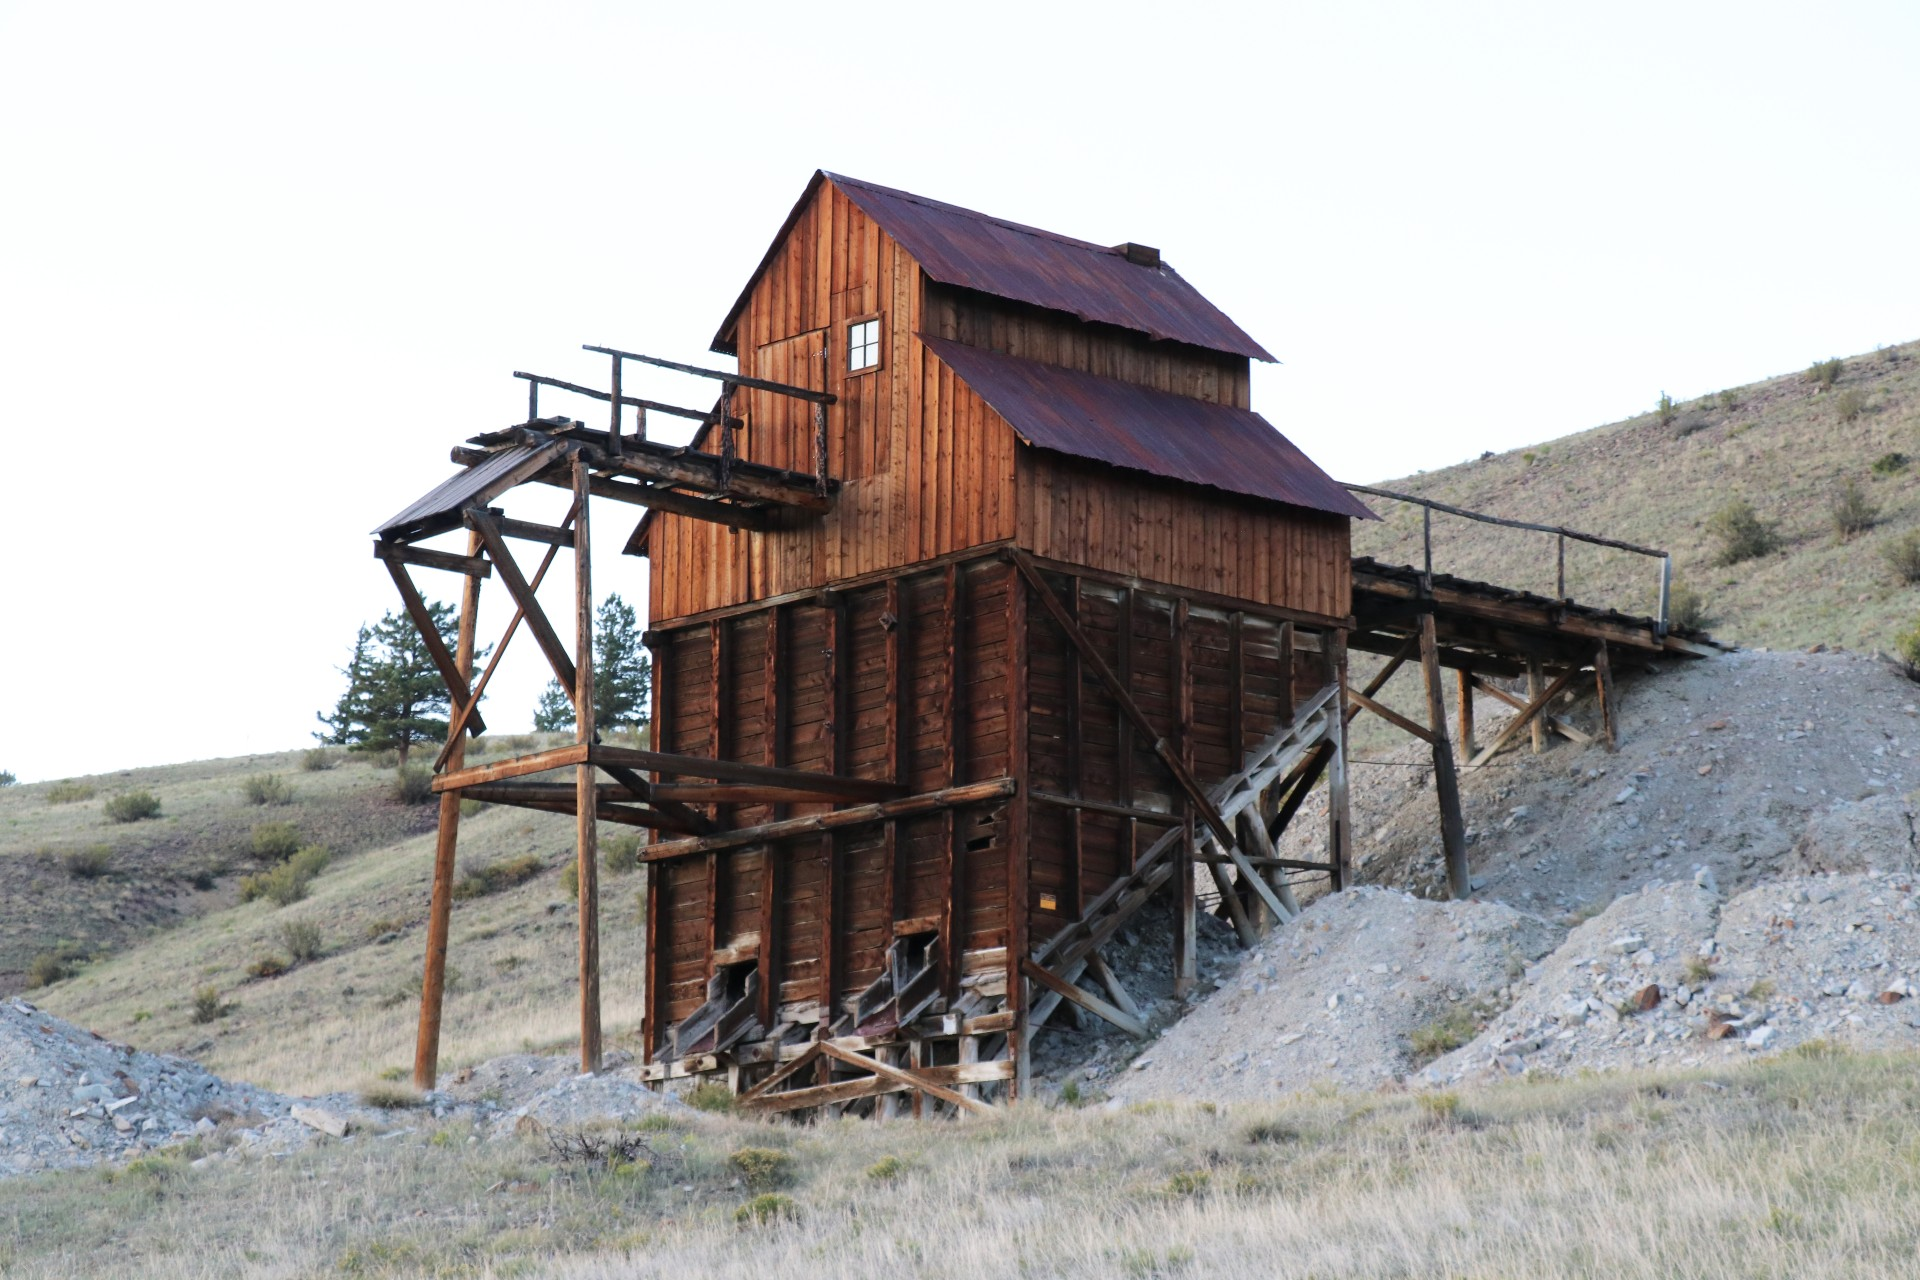 Historical Mining Site Photographed By Sara Turbyfill In Mineral County, CO.